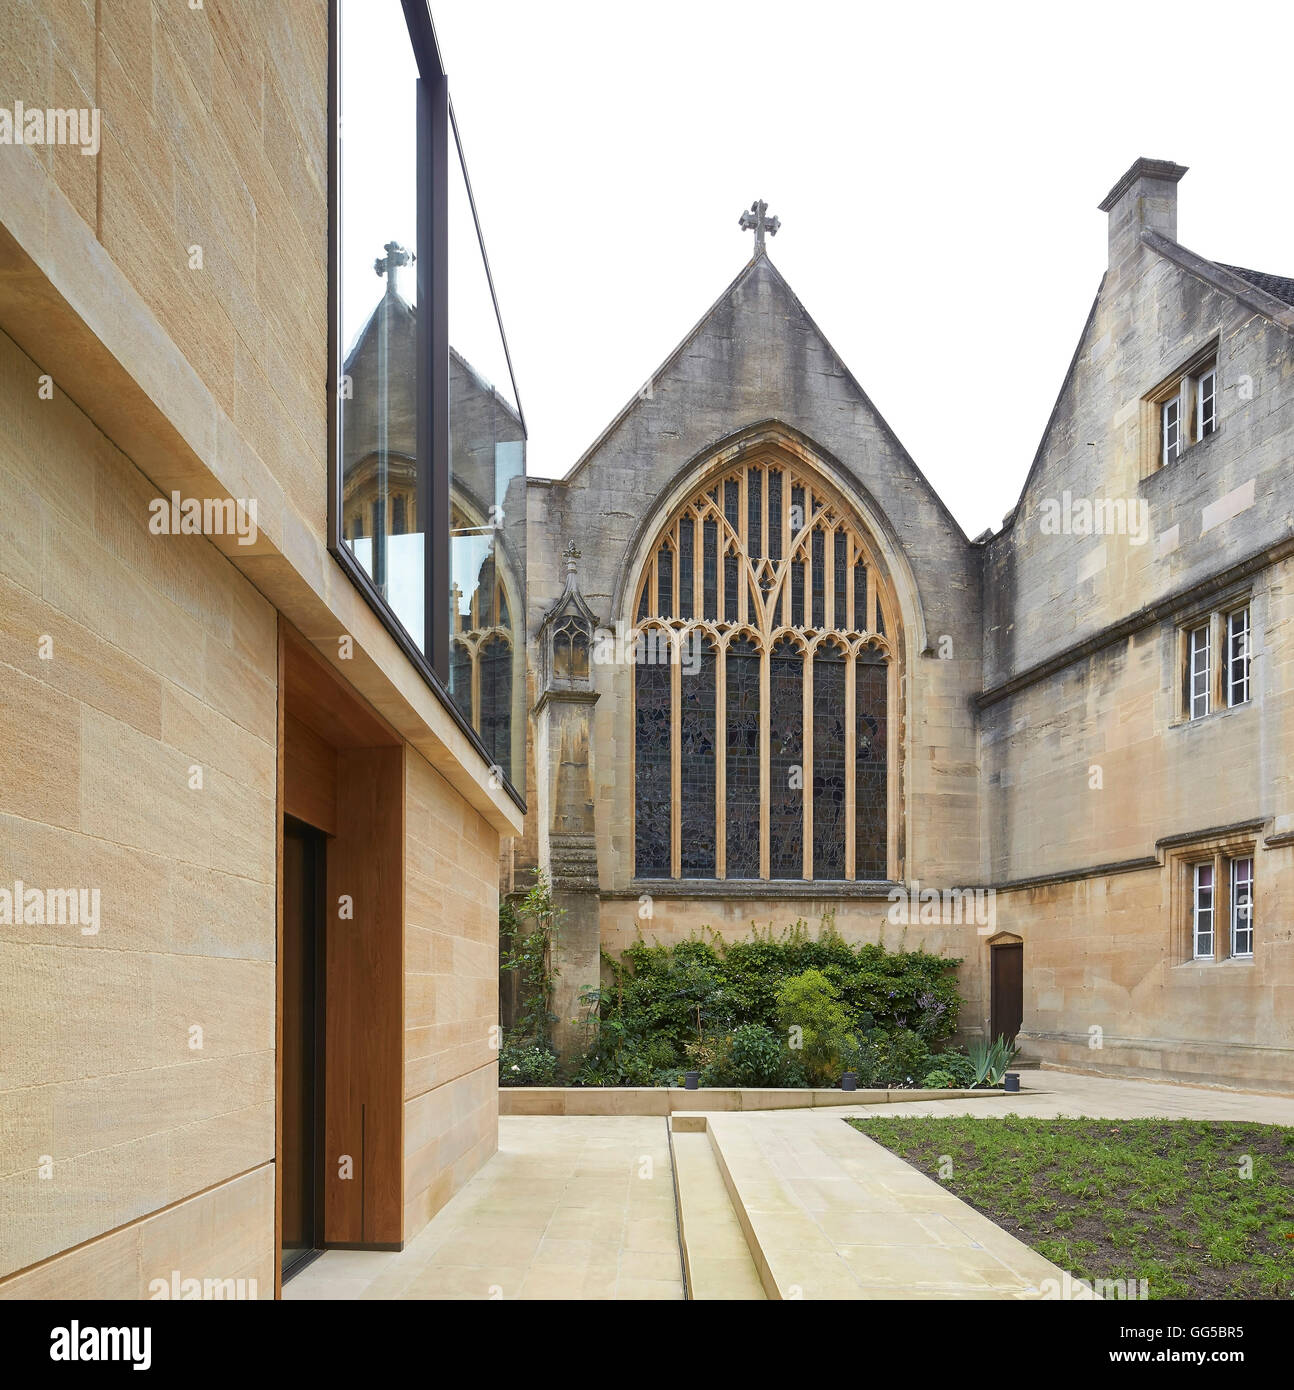 Modern Architecture Oxford modern facade in juxtaposition to chapel window. the garden